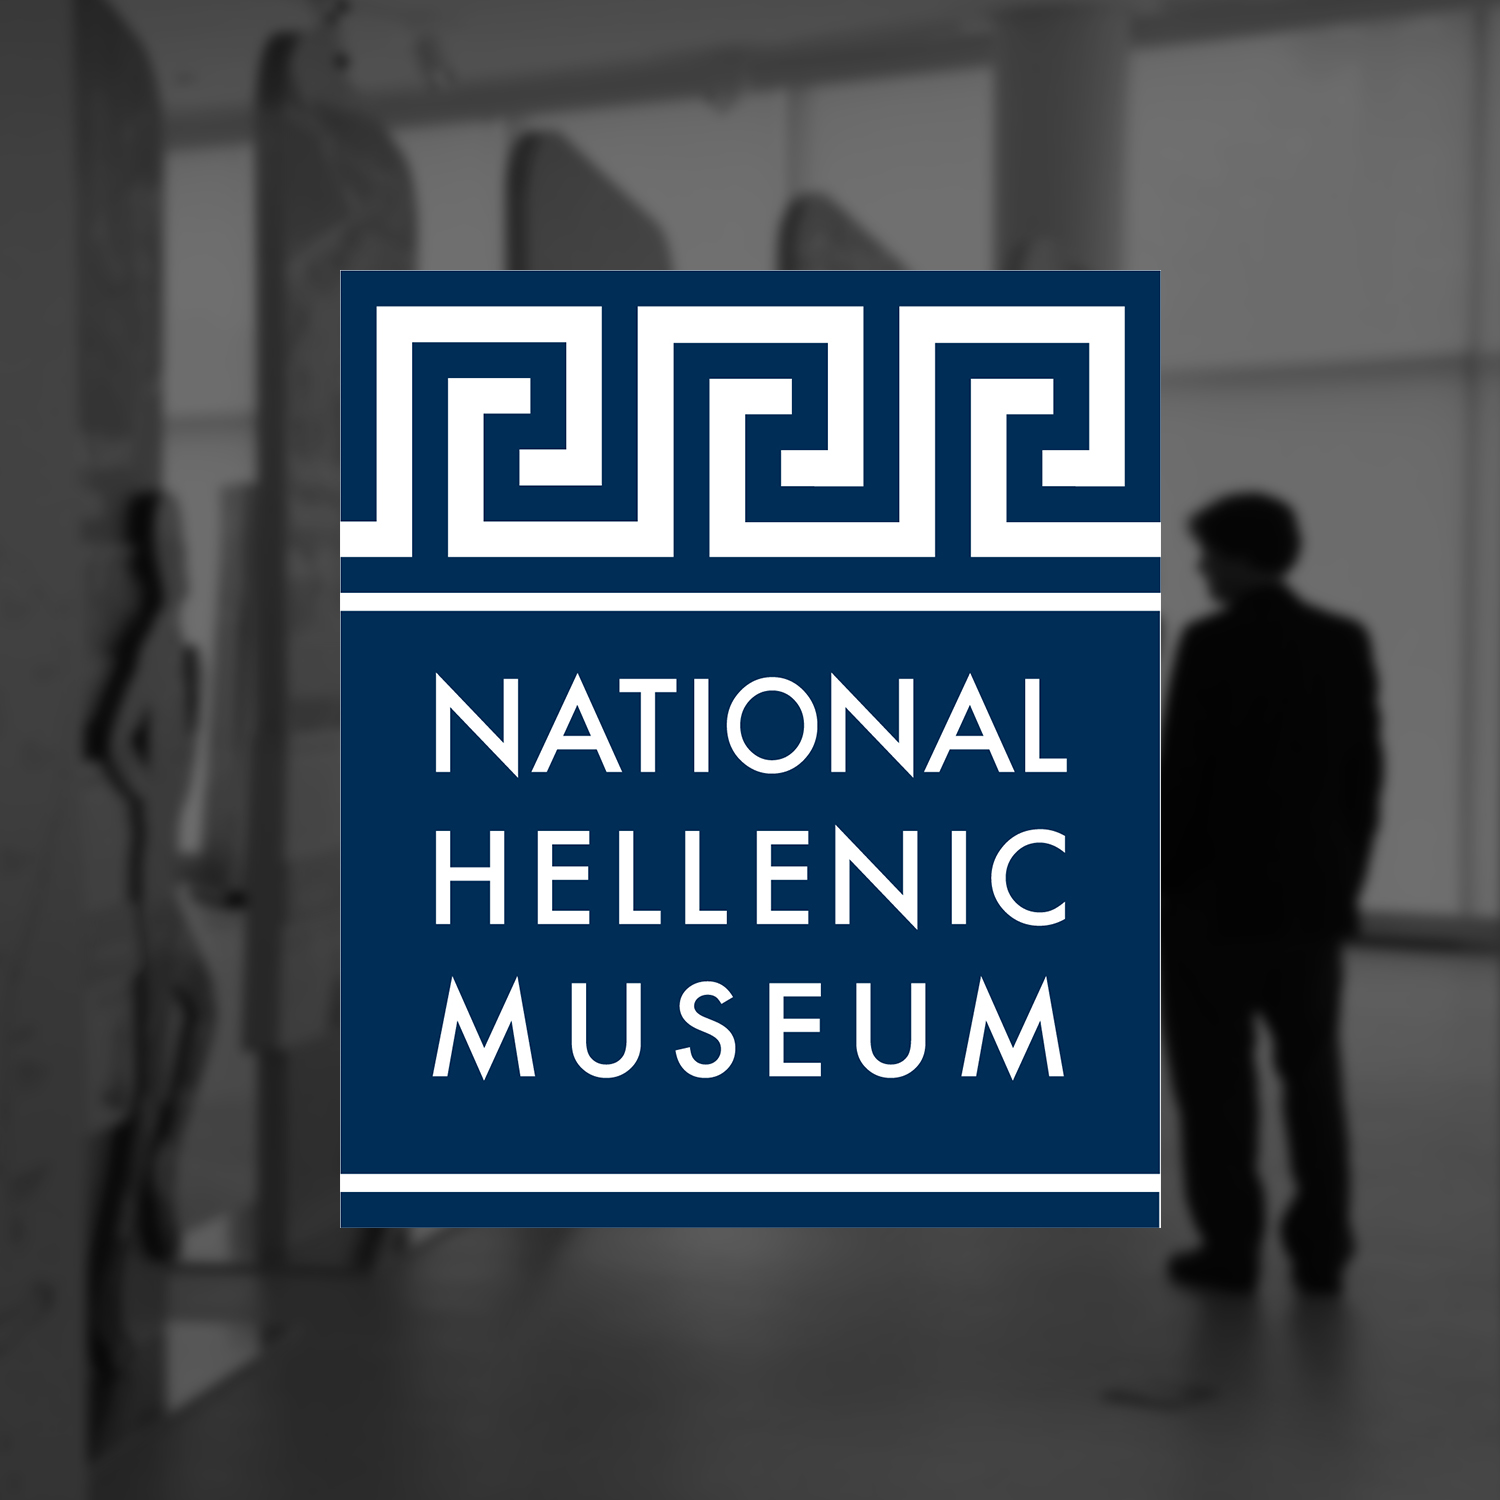 NationalHellenicMuseum - 1.jpg